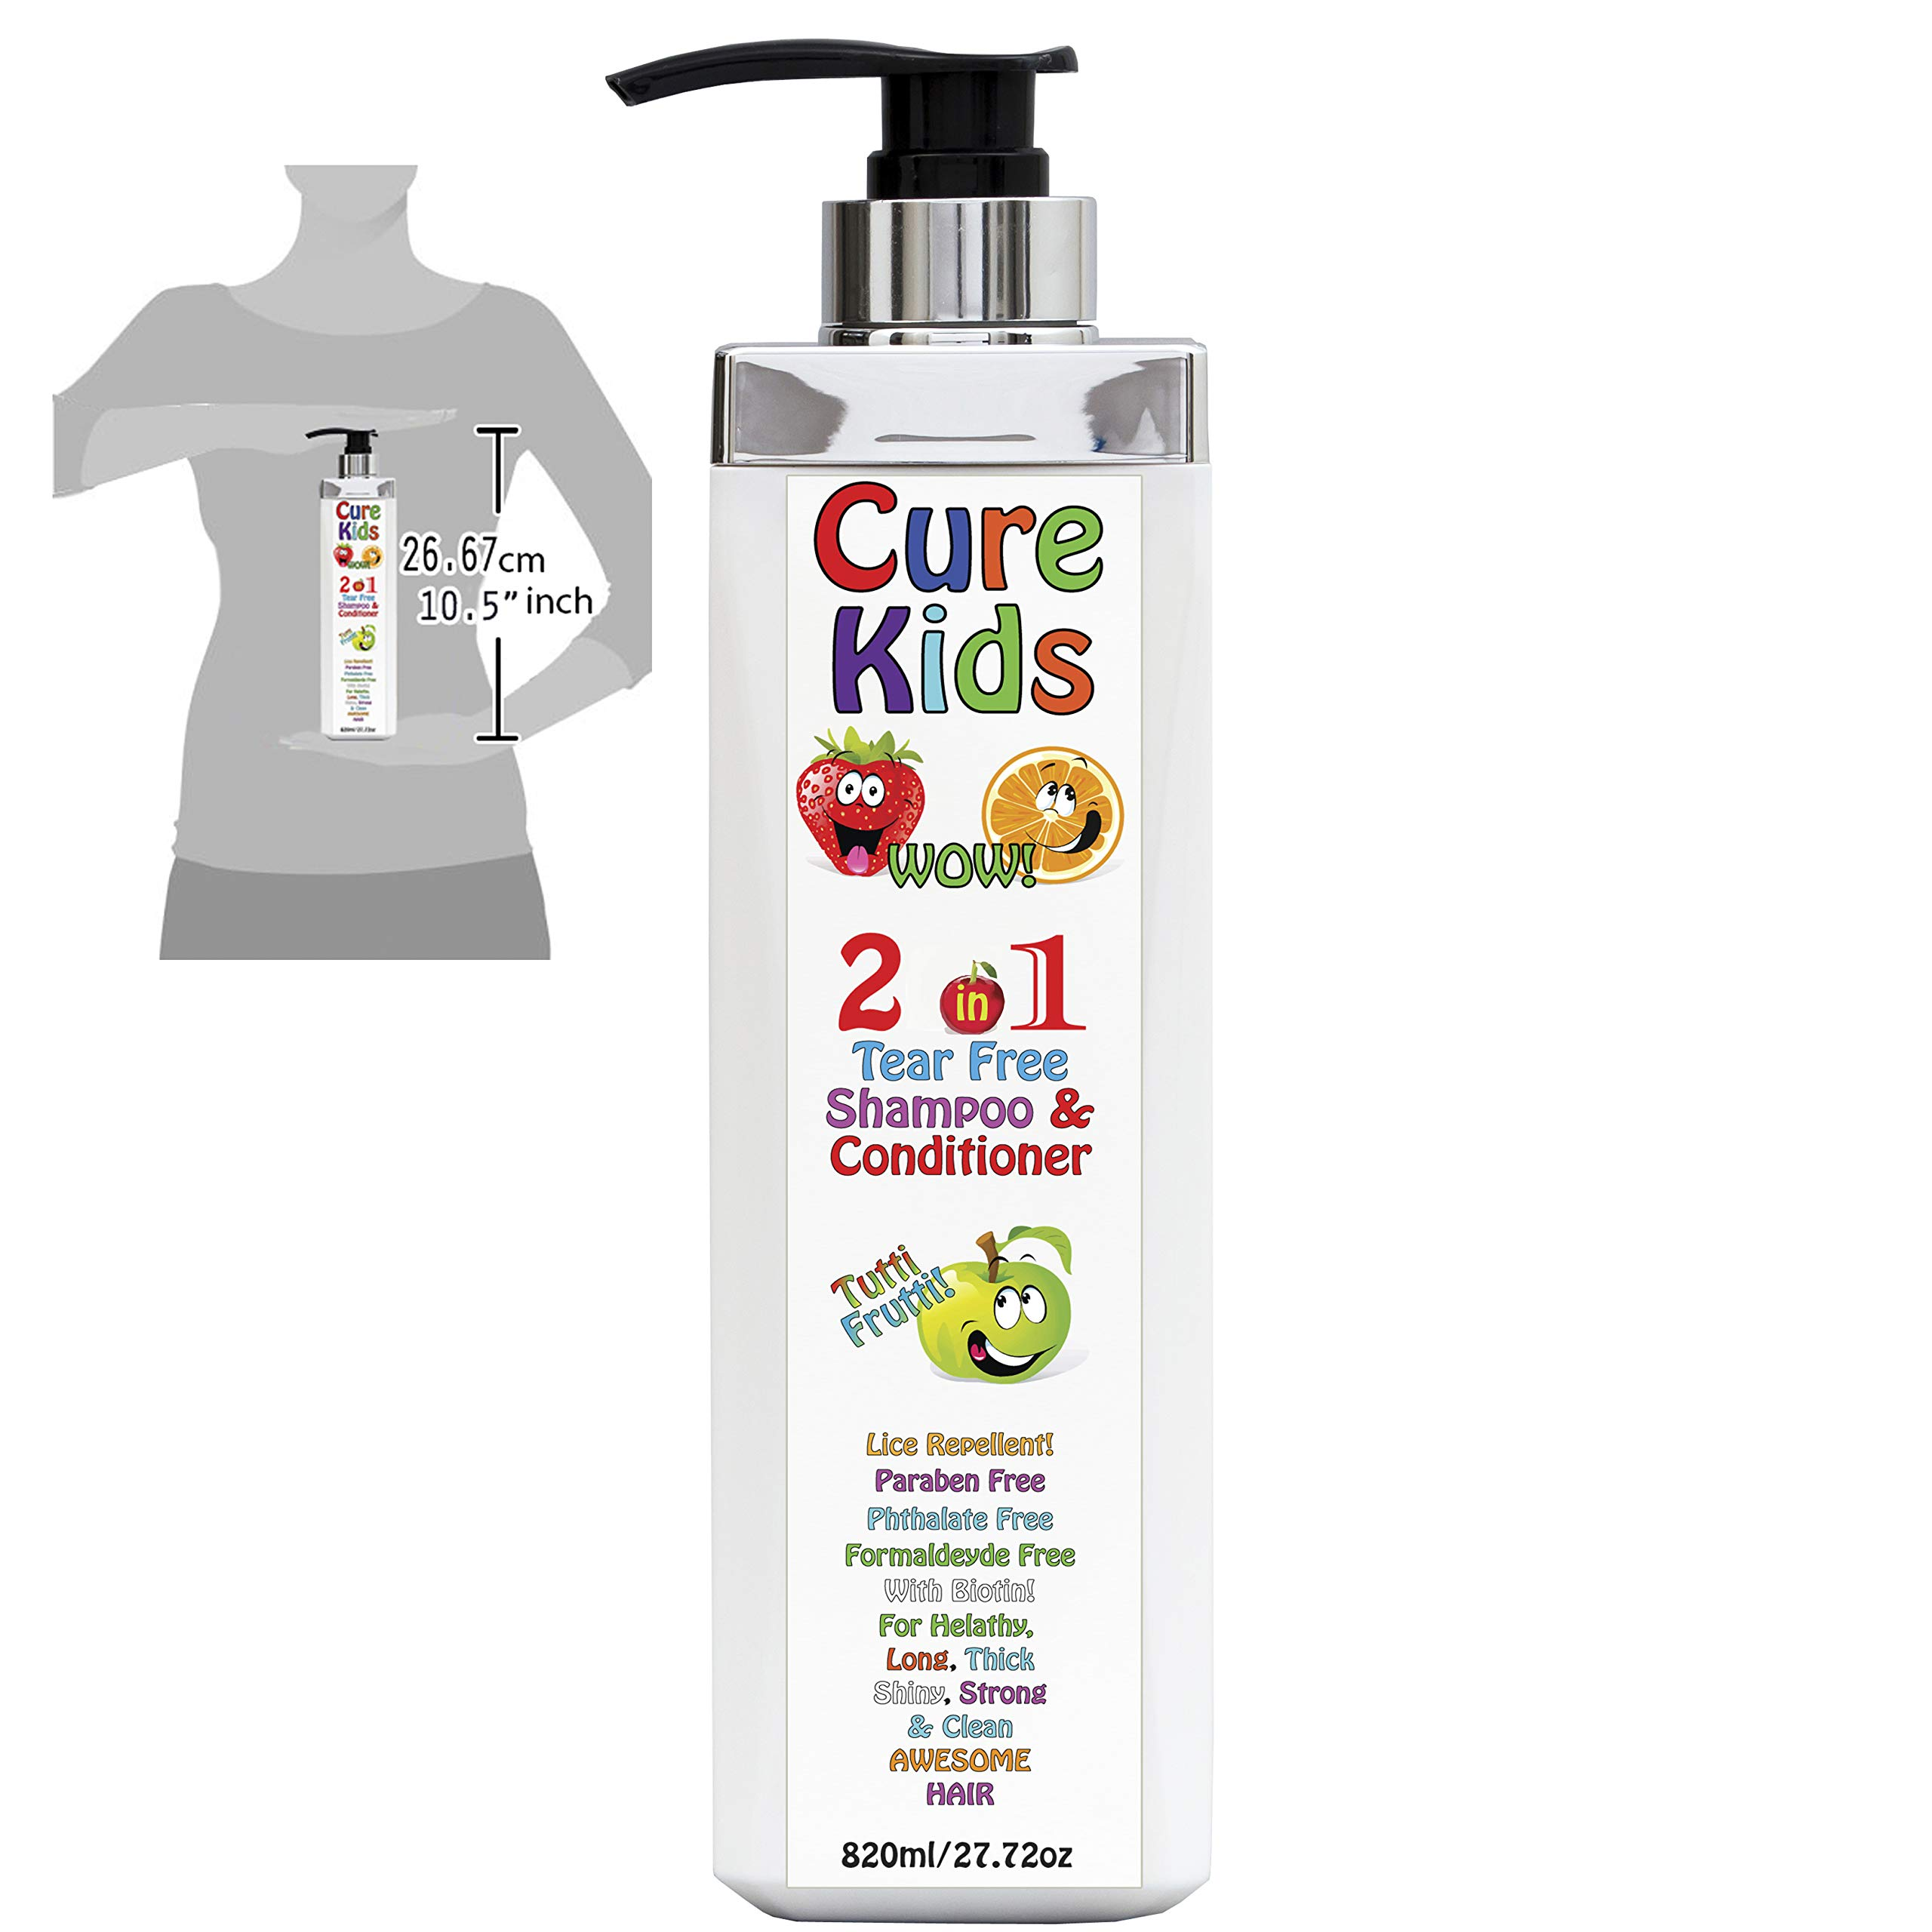 Kids Head Lice Repel 2 in1 Tutti Fruity Daily Shampoo & Conditioner Free of sulfates Paraben & Toxins/No Tears Cleanse Moisturize Detangler Organic blend of Oils Safe for scalp (27 fl oz) by Keratin Cure